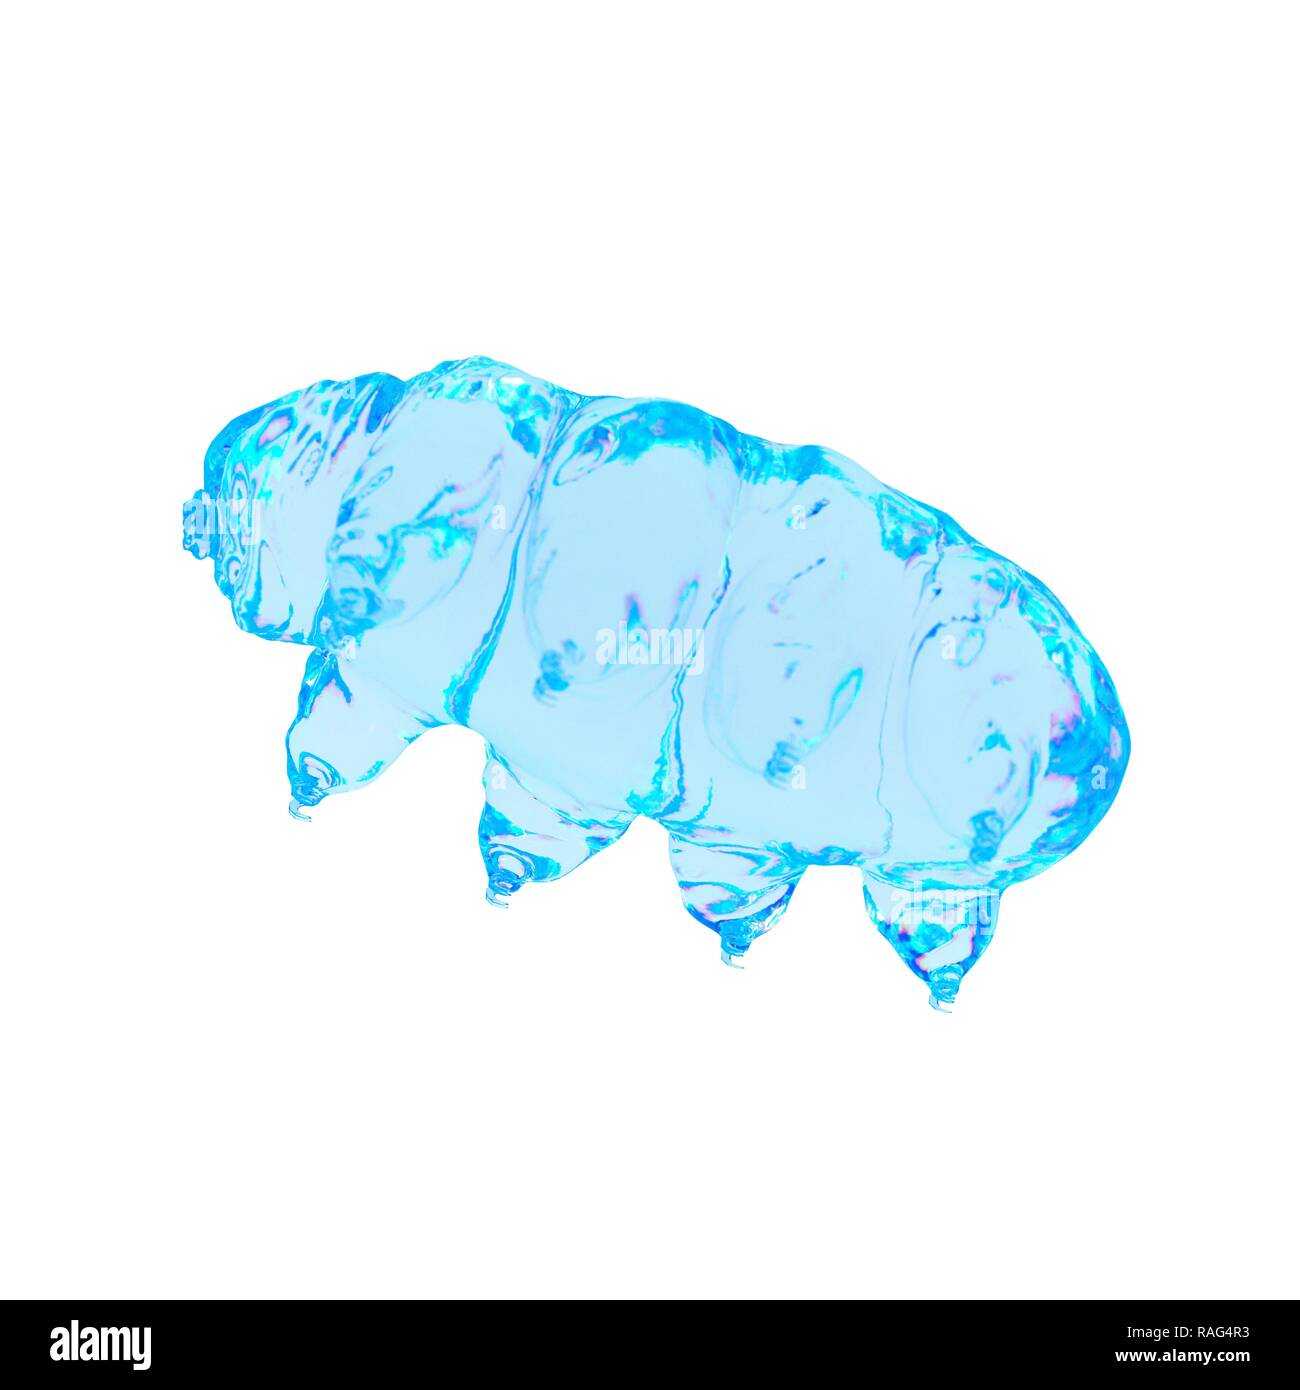 Illustration of a water bear. - Stock Image